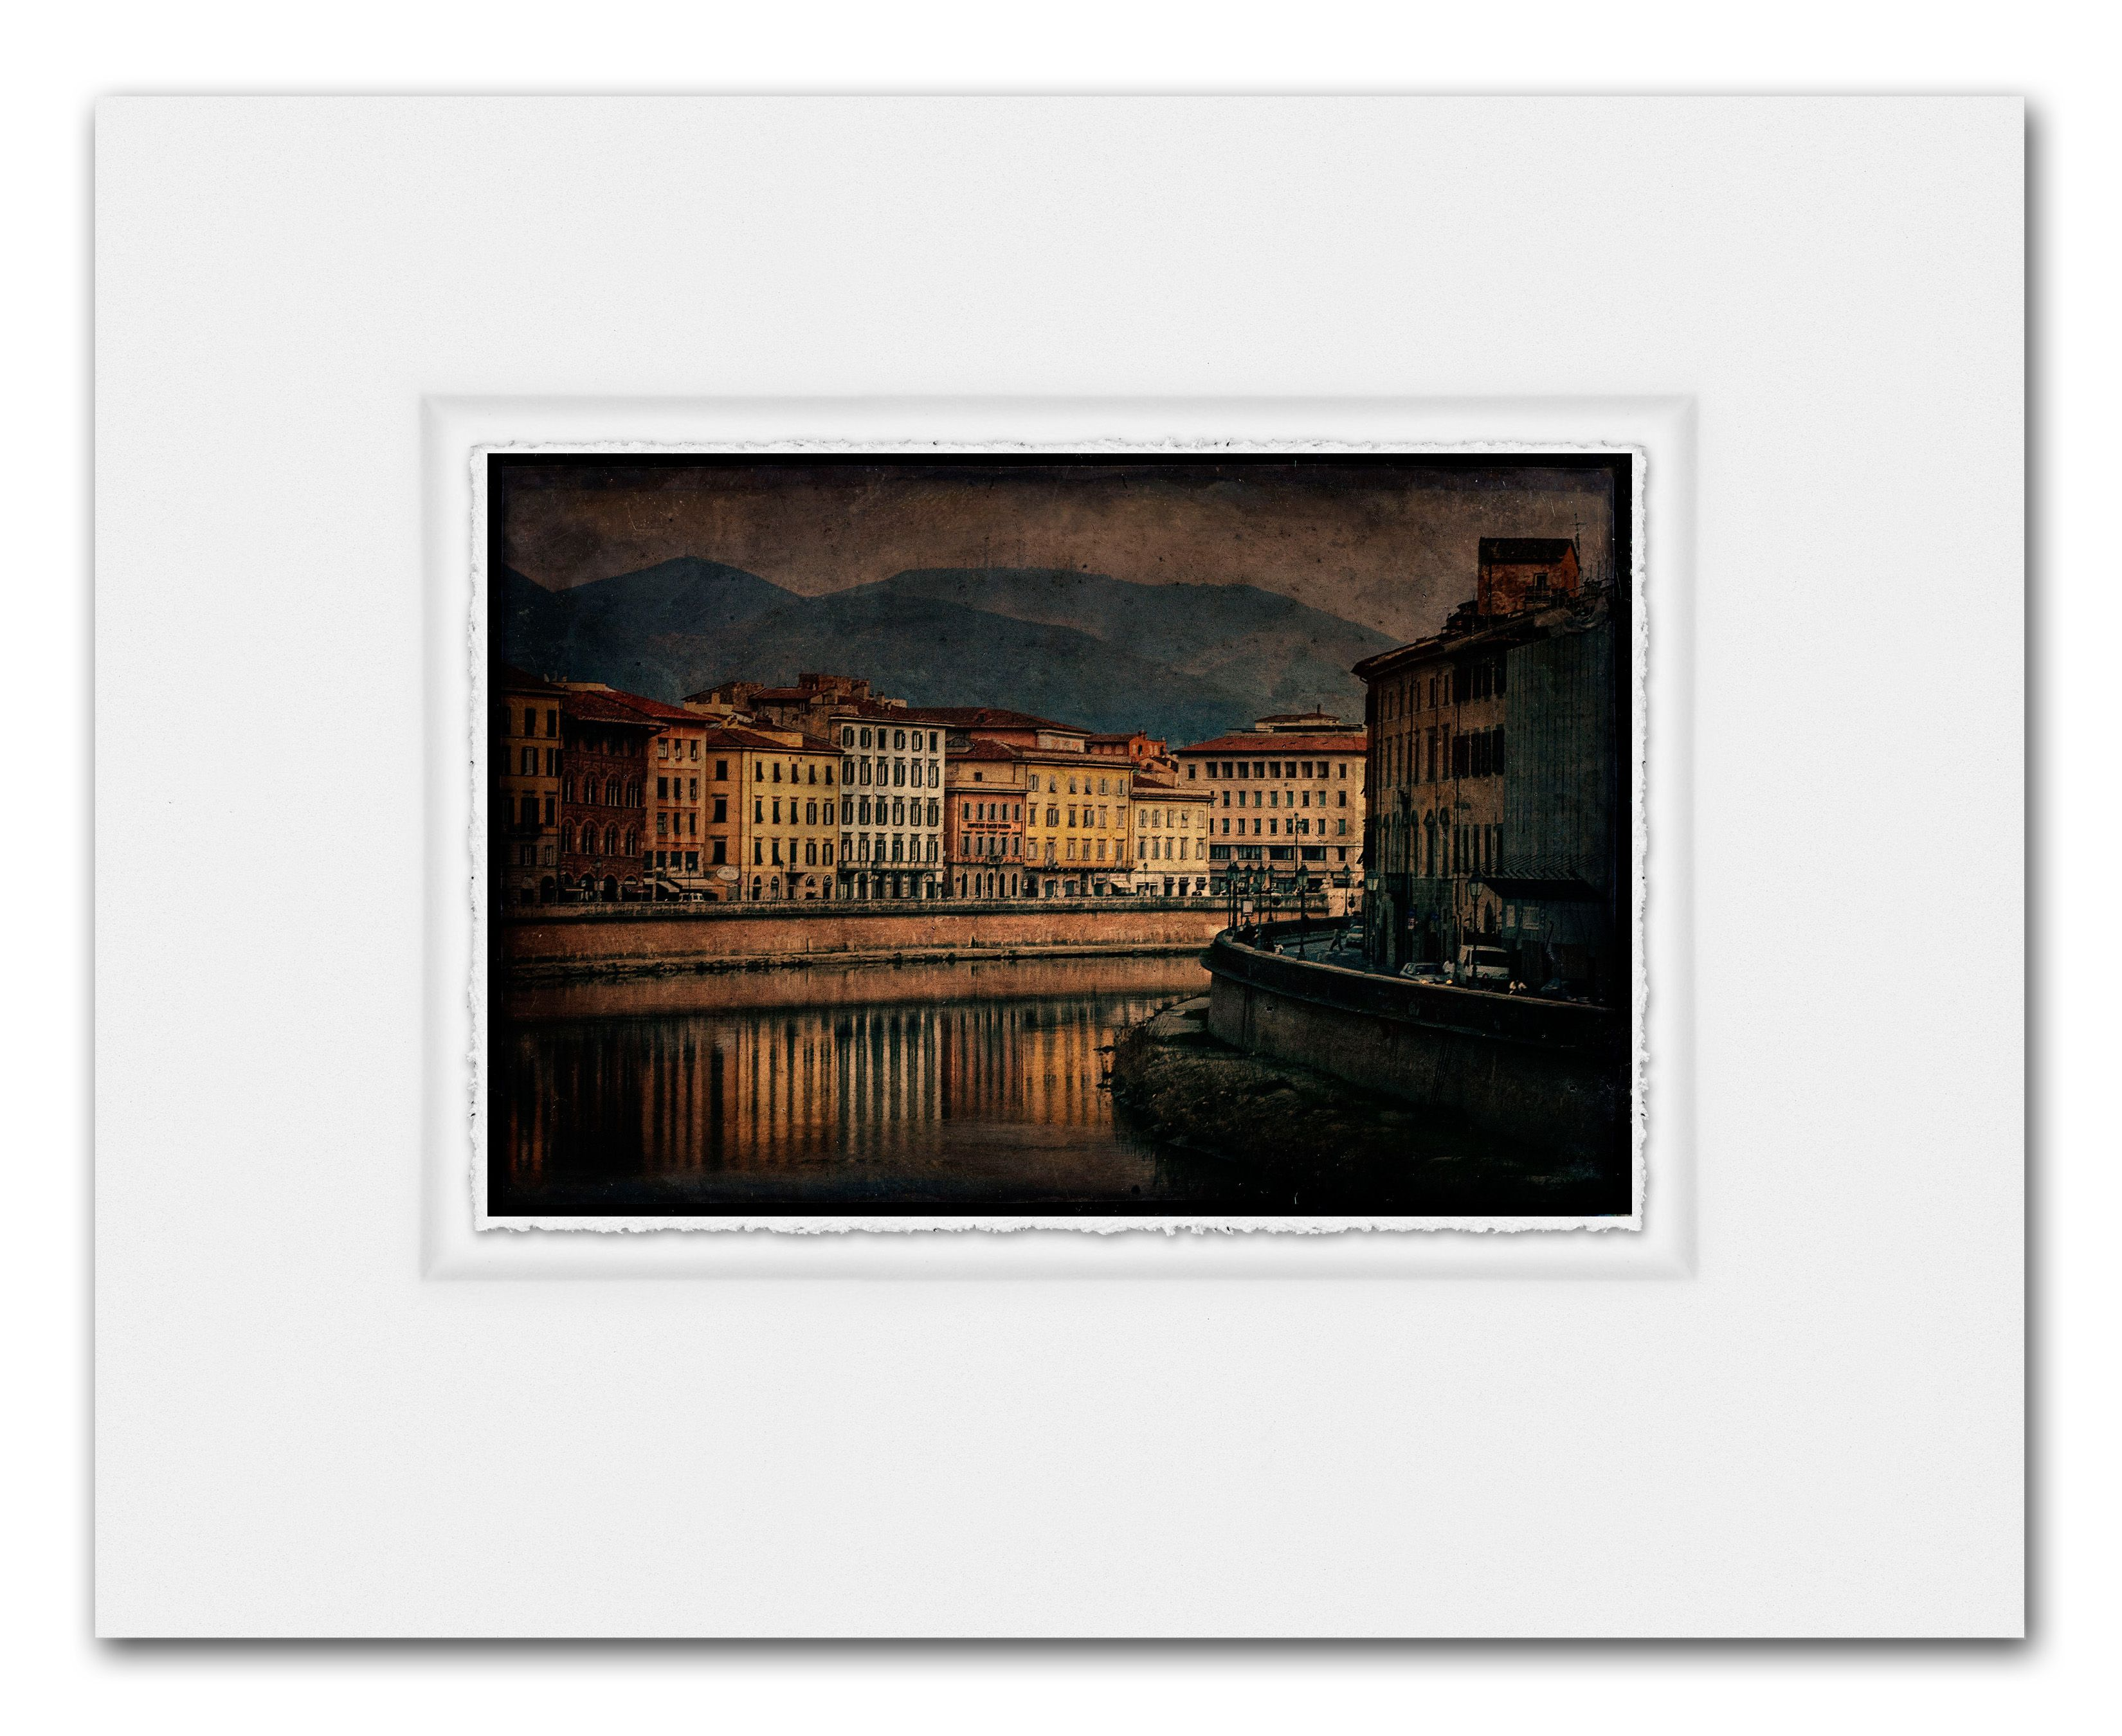 Print on watercolor paper, deckle edges with inset panel/float mount ...